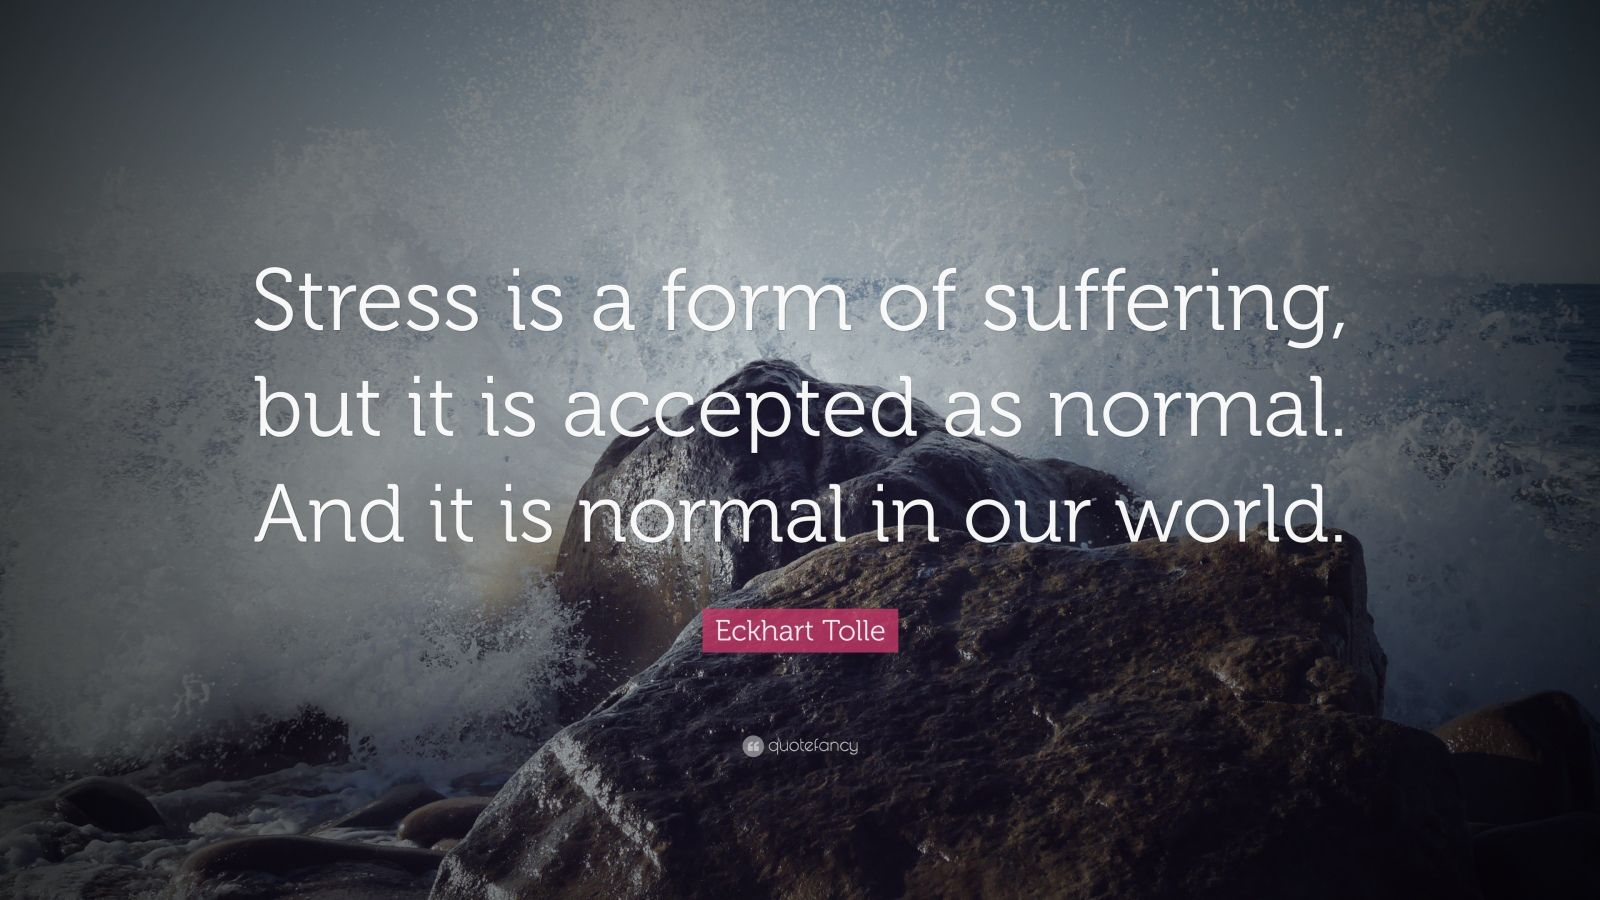 """Eckhart Tolle Quote: """"Stress is a form of suffering, but it is accepted as normal. And it is normal in our world."""""""